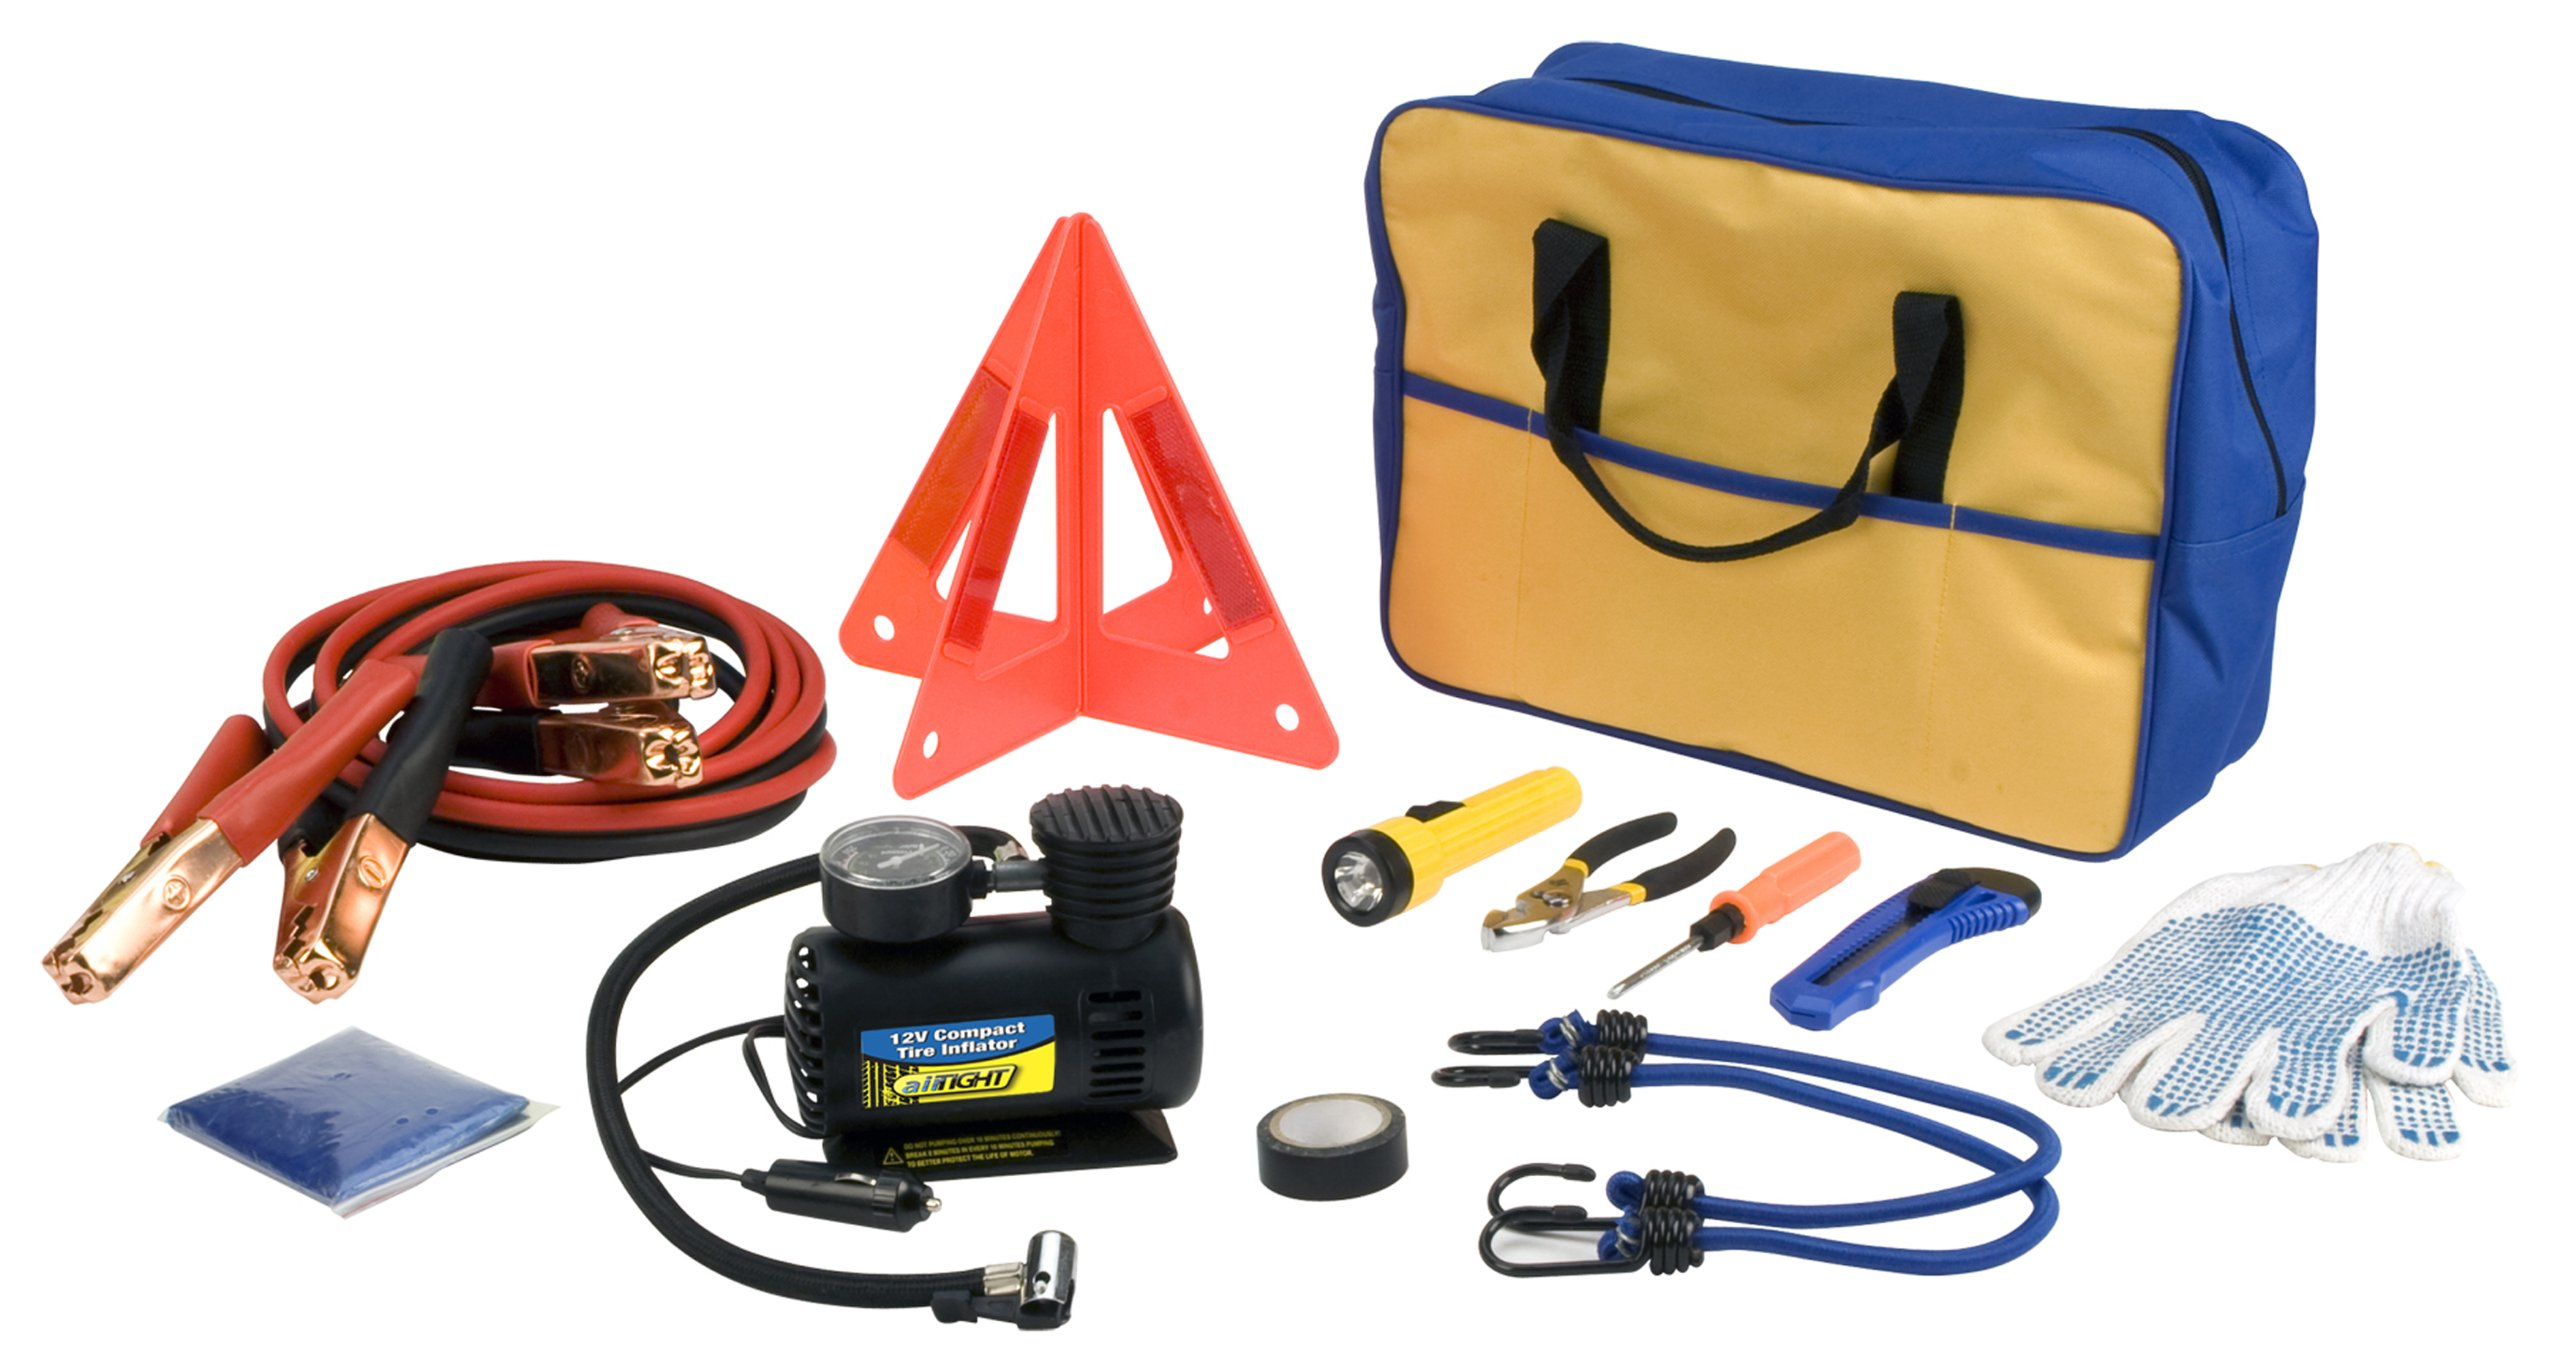 Performance Tool 60220 Premium Roadside Emergency Kit With Jumper Cables by Performance Tool